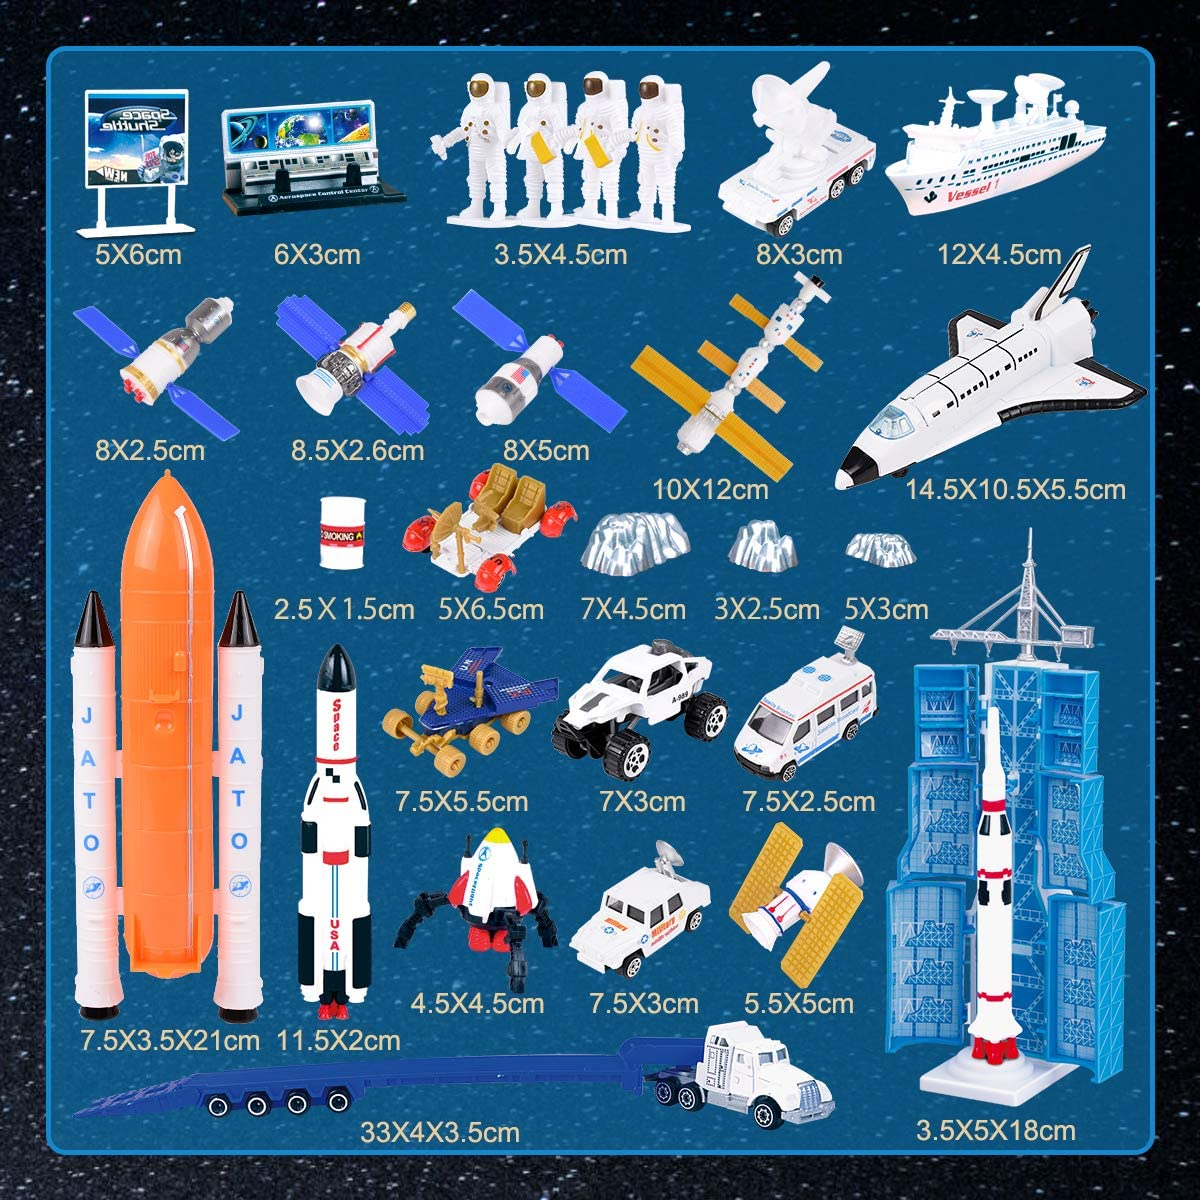 Learning Die-Cast Space Shuttle REMOKING Space Adventure Toy Playset Artificial Satellite,Explorer,Great Gifts for Kids 3 Years and up Educational Aerospace/Toy Series with Space Playmat